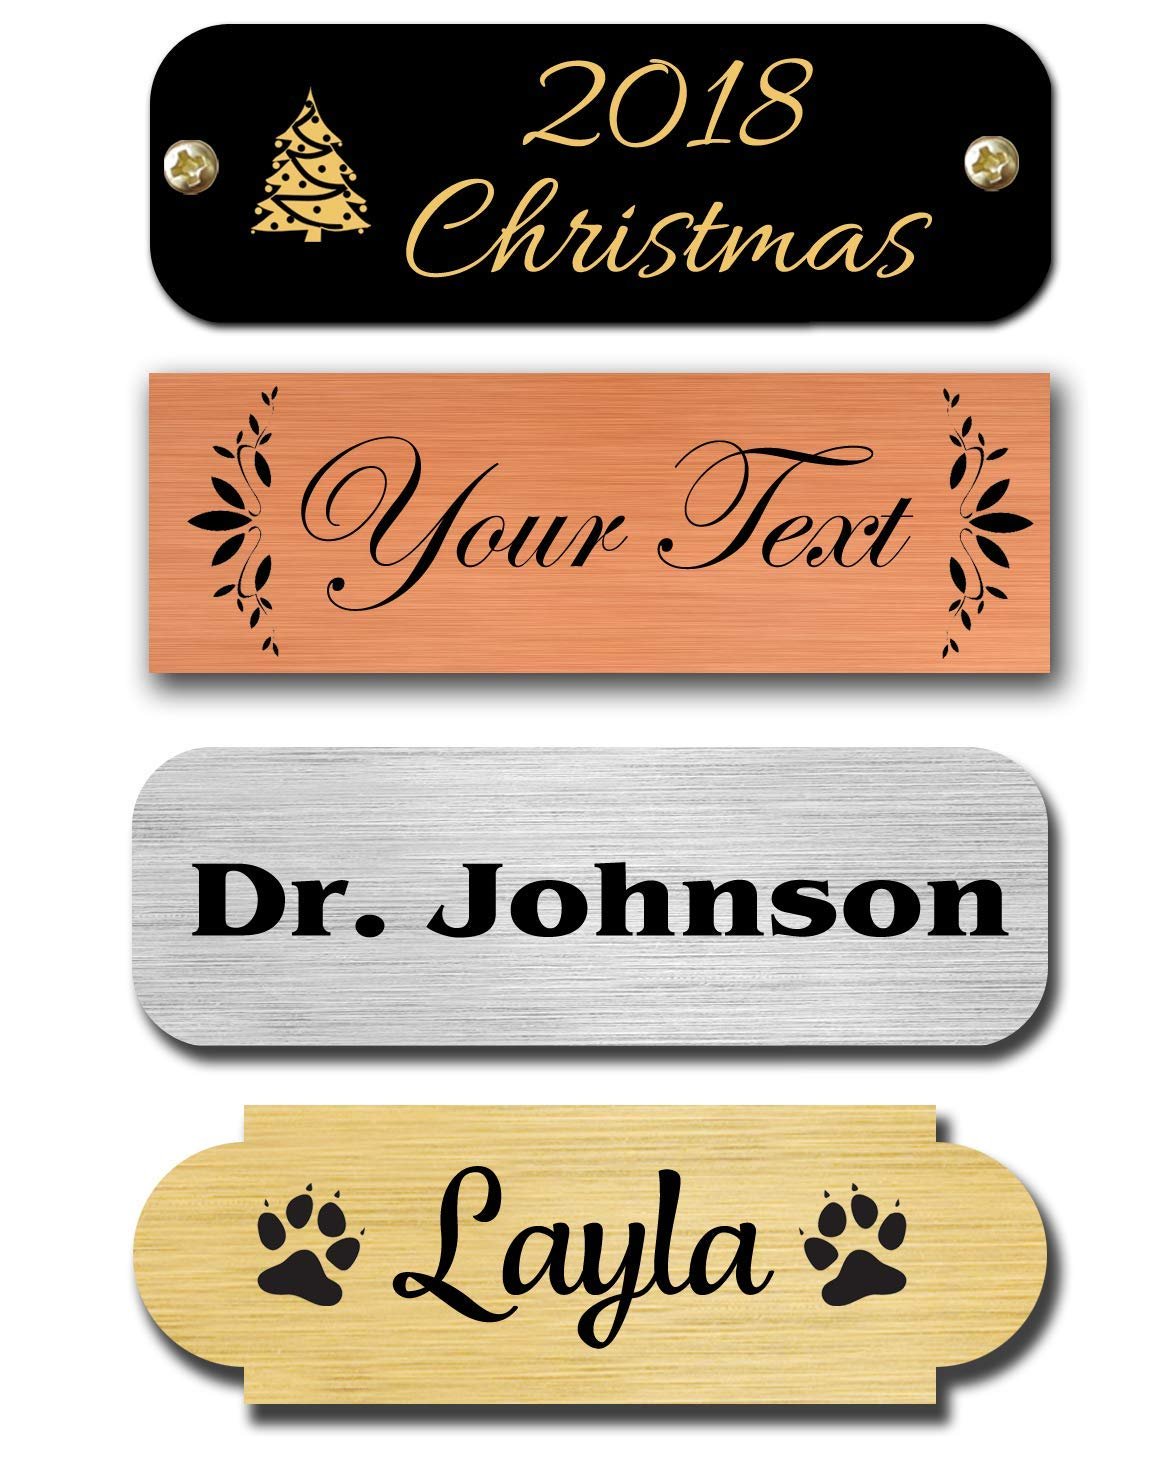 """0.5"""" H x 1.5"""" W, Brass Nameplates, Metal Plate, Personalized, Custom Engraved Tag, Name Plaque, Square or Round Corners Made in USA (Satin Brass)"""